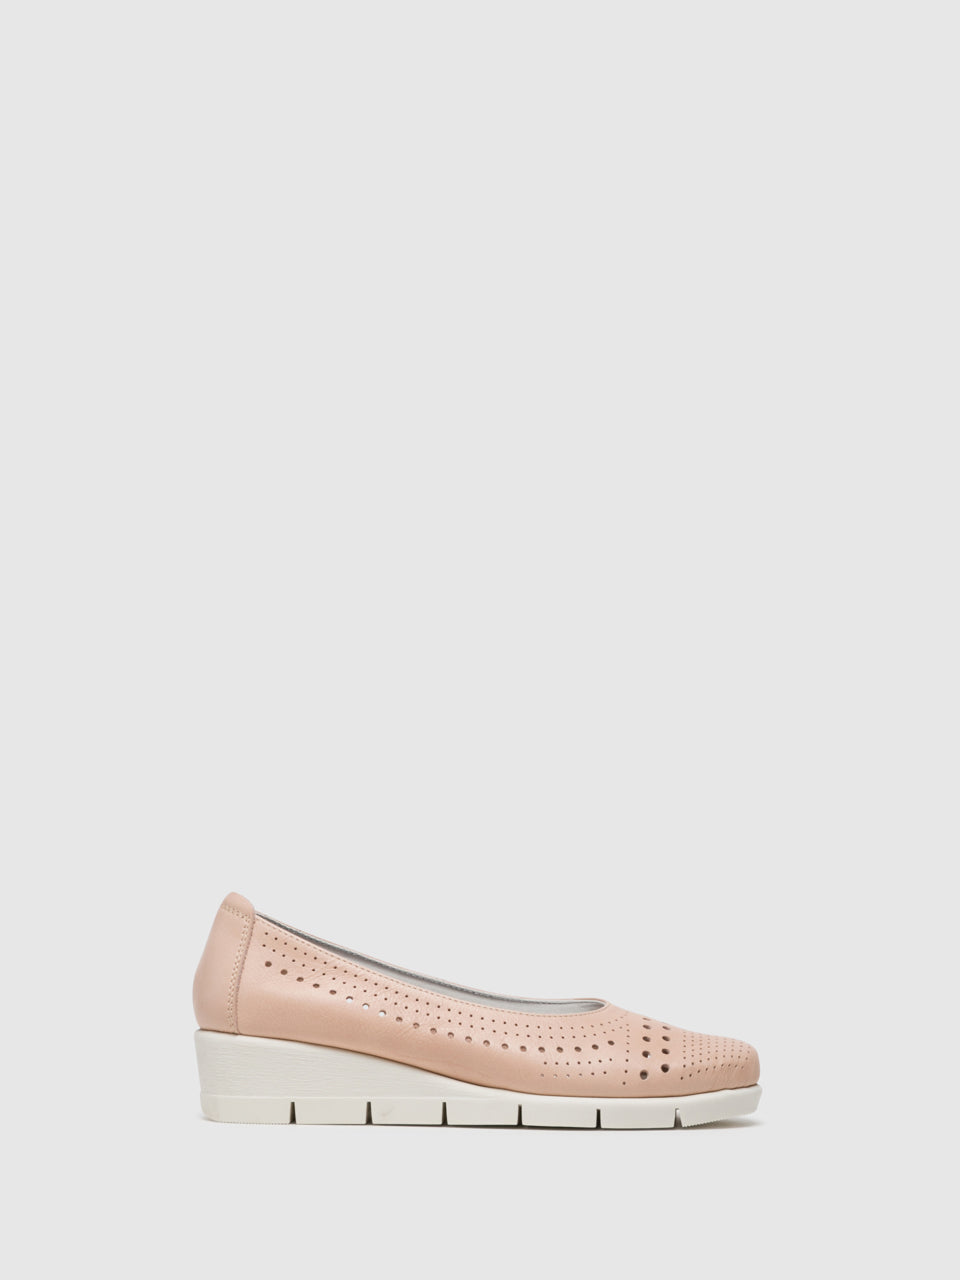 The Flexx LightPink Wedge Shoes